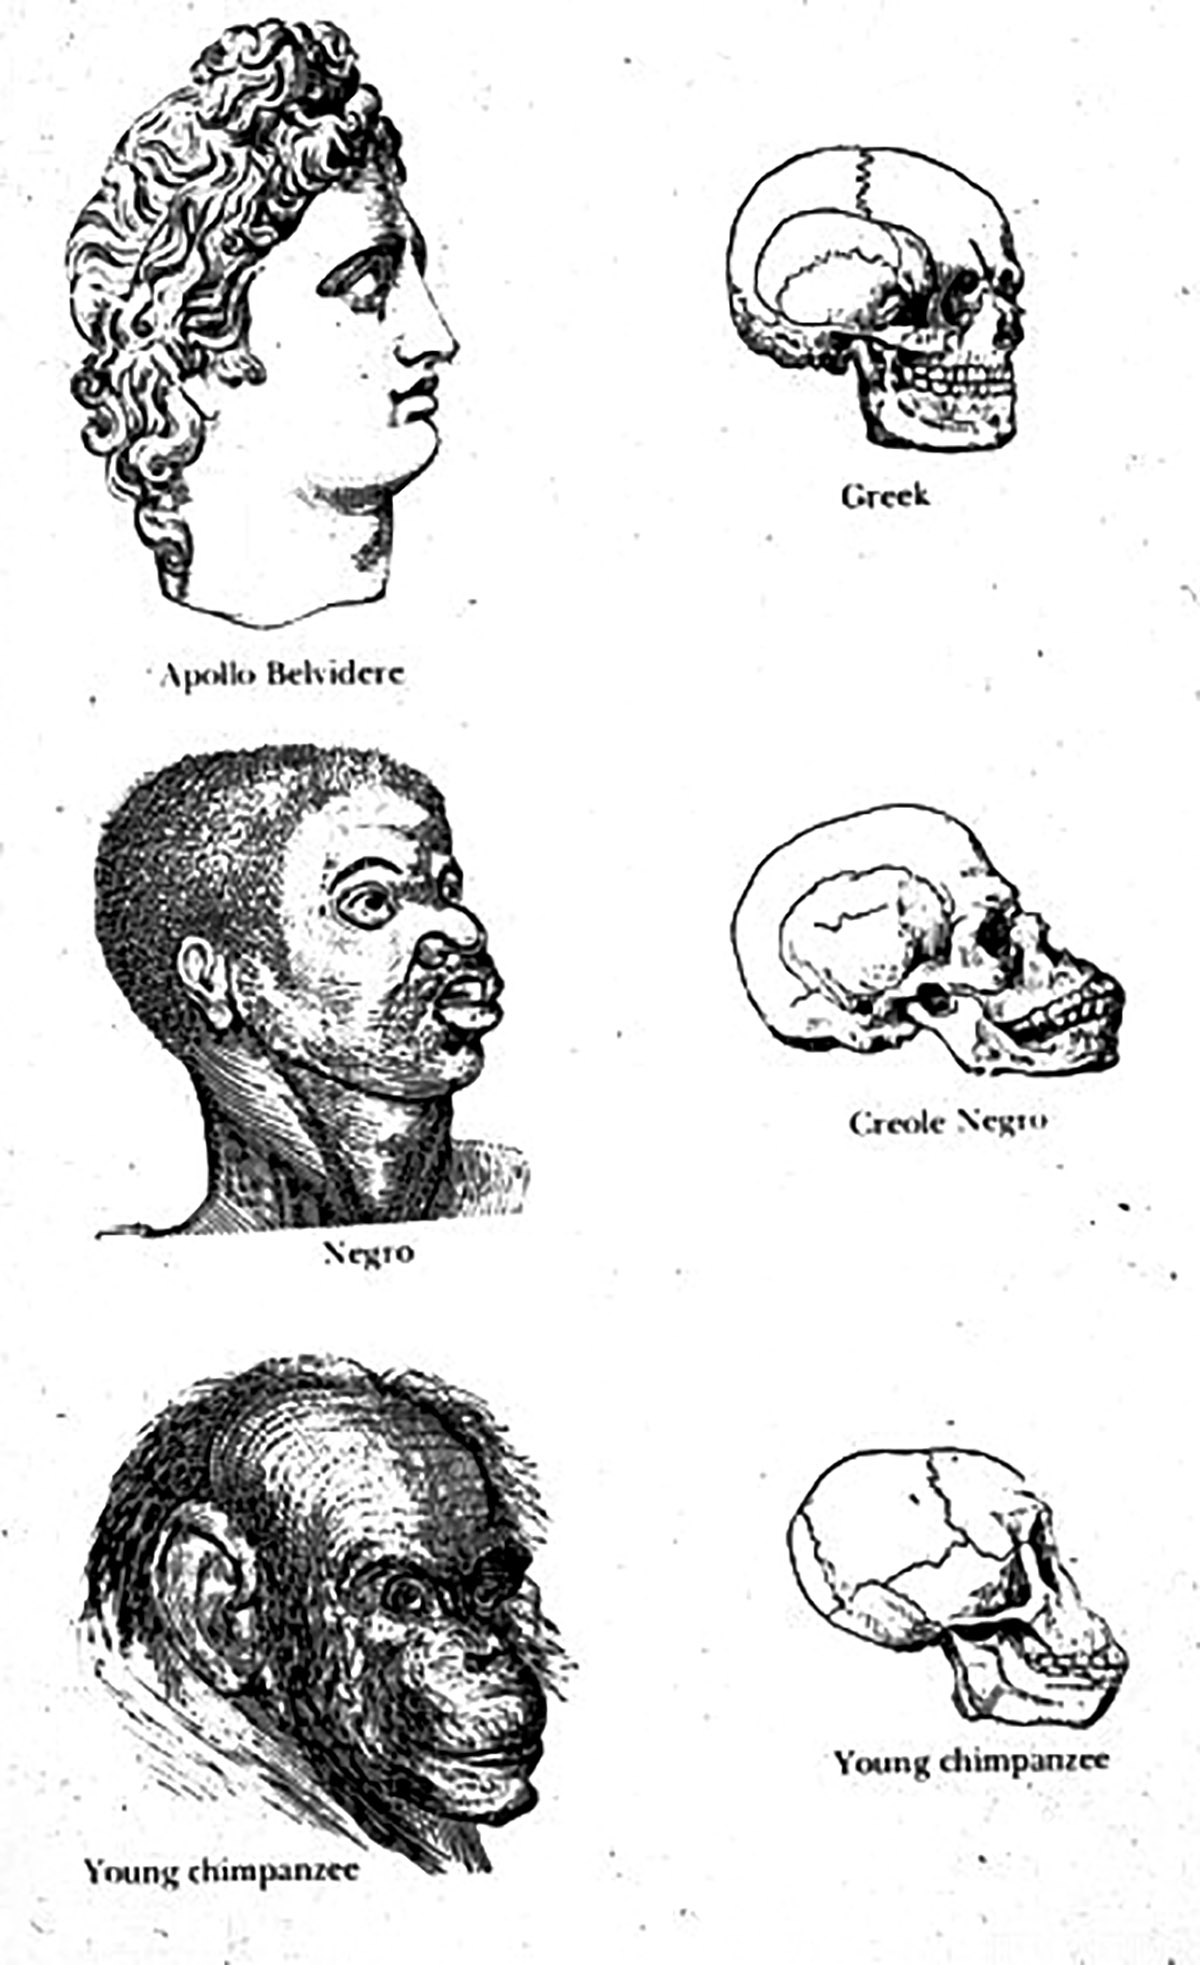 Types of Mankind (1854)